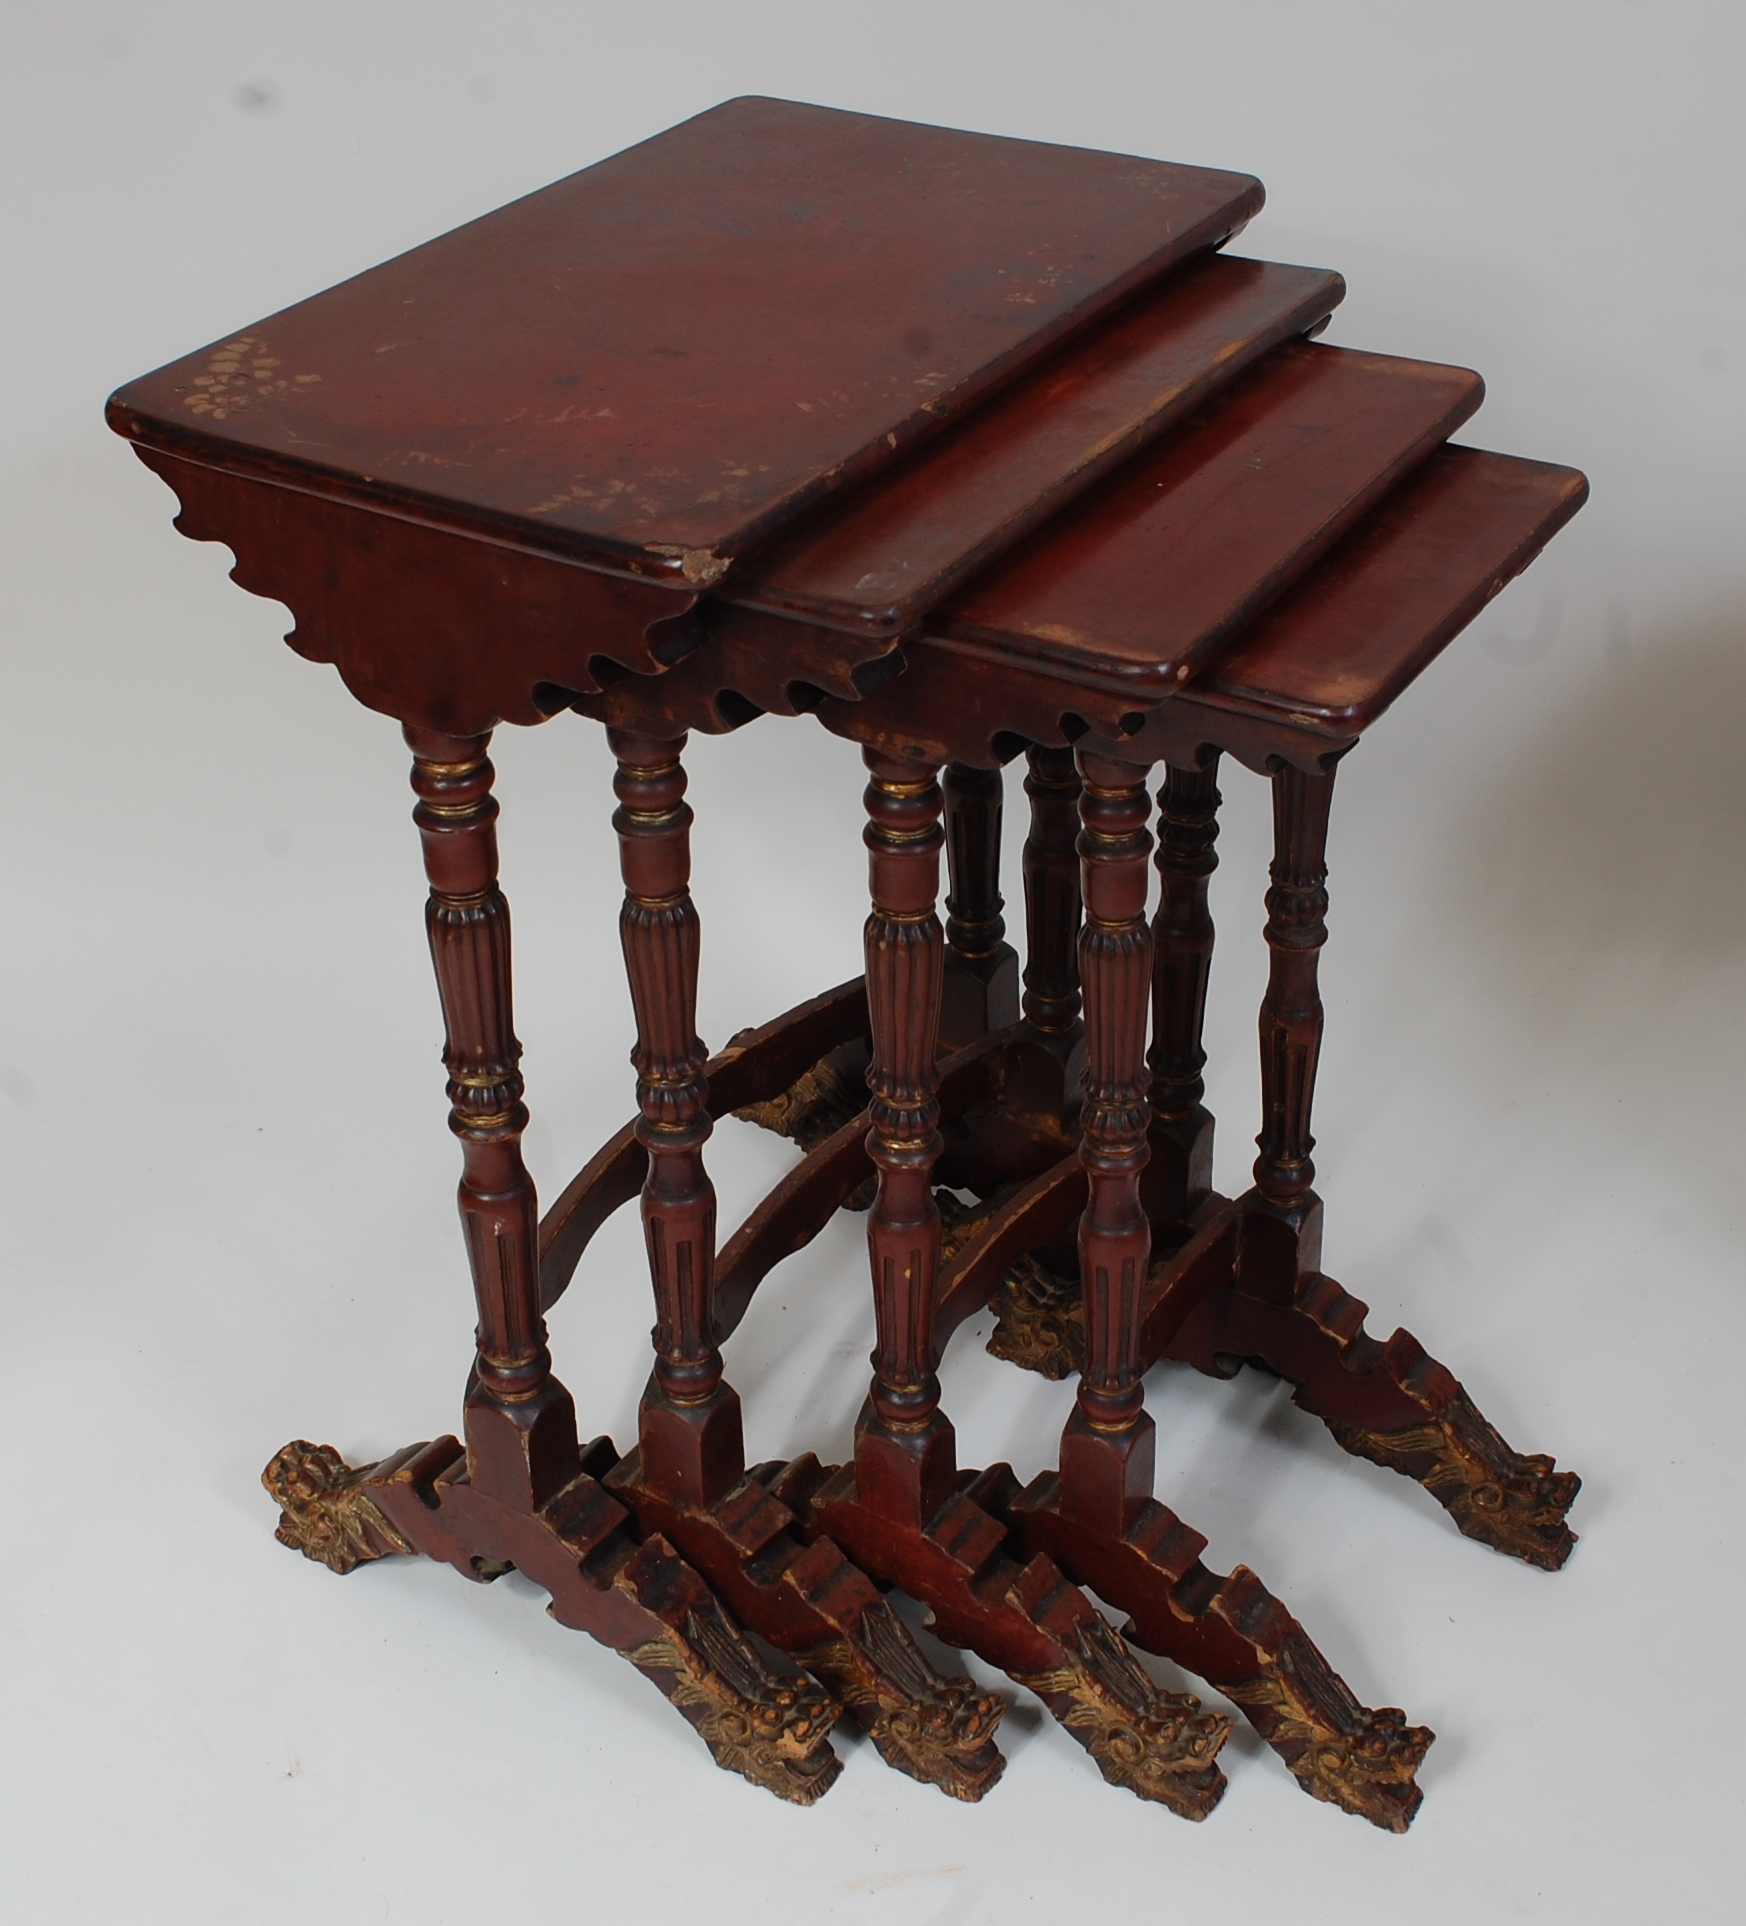 Lot 1325 - A Japanese Meiji period quartetto nest of occasional tables, each having rectangular red lacquered